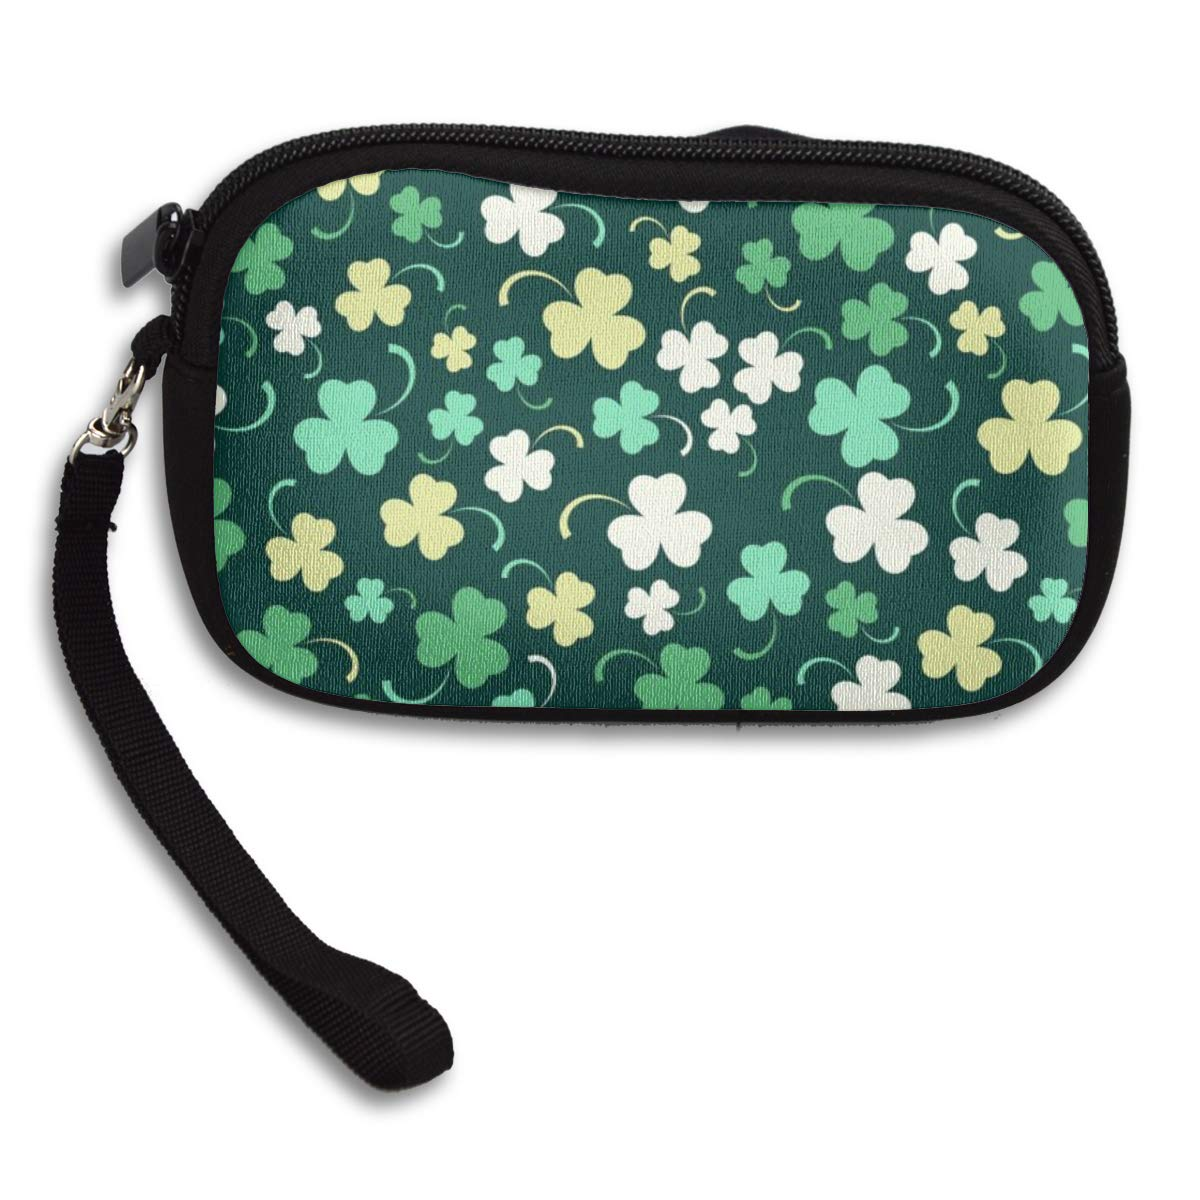 Coin Purse Green Watercolor Shamrock Coin Pouch With Zipper,Make Up Bag,Wallet Bag Change Pouch Key Holder